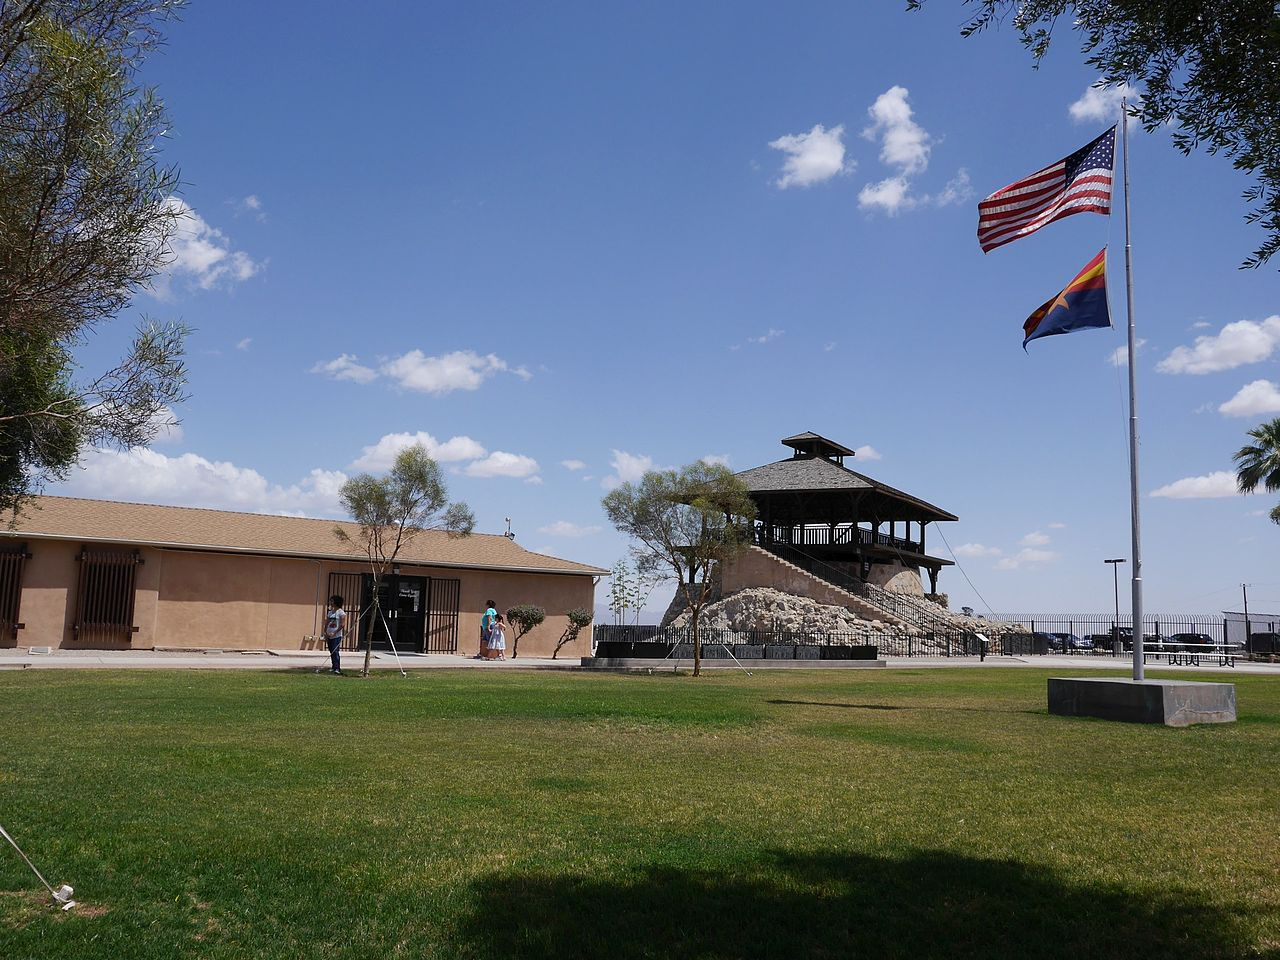 12 Top-Rated Places To Visit In Yuma